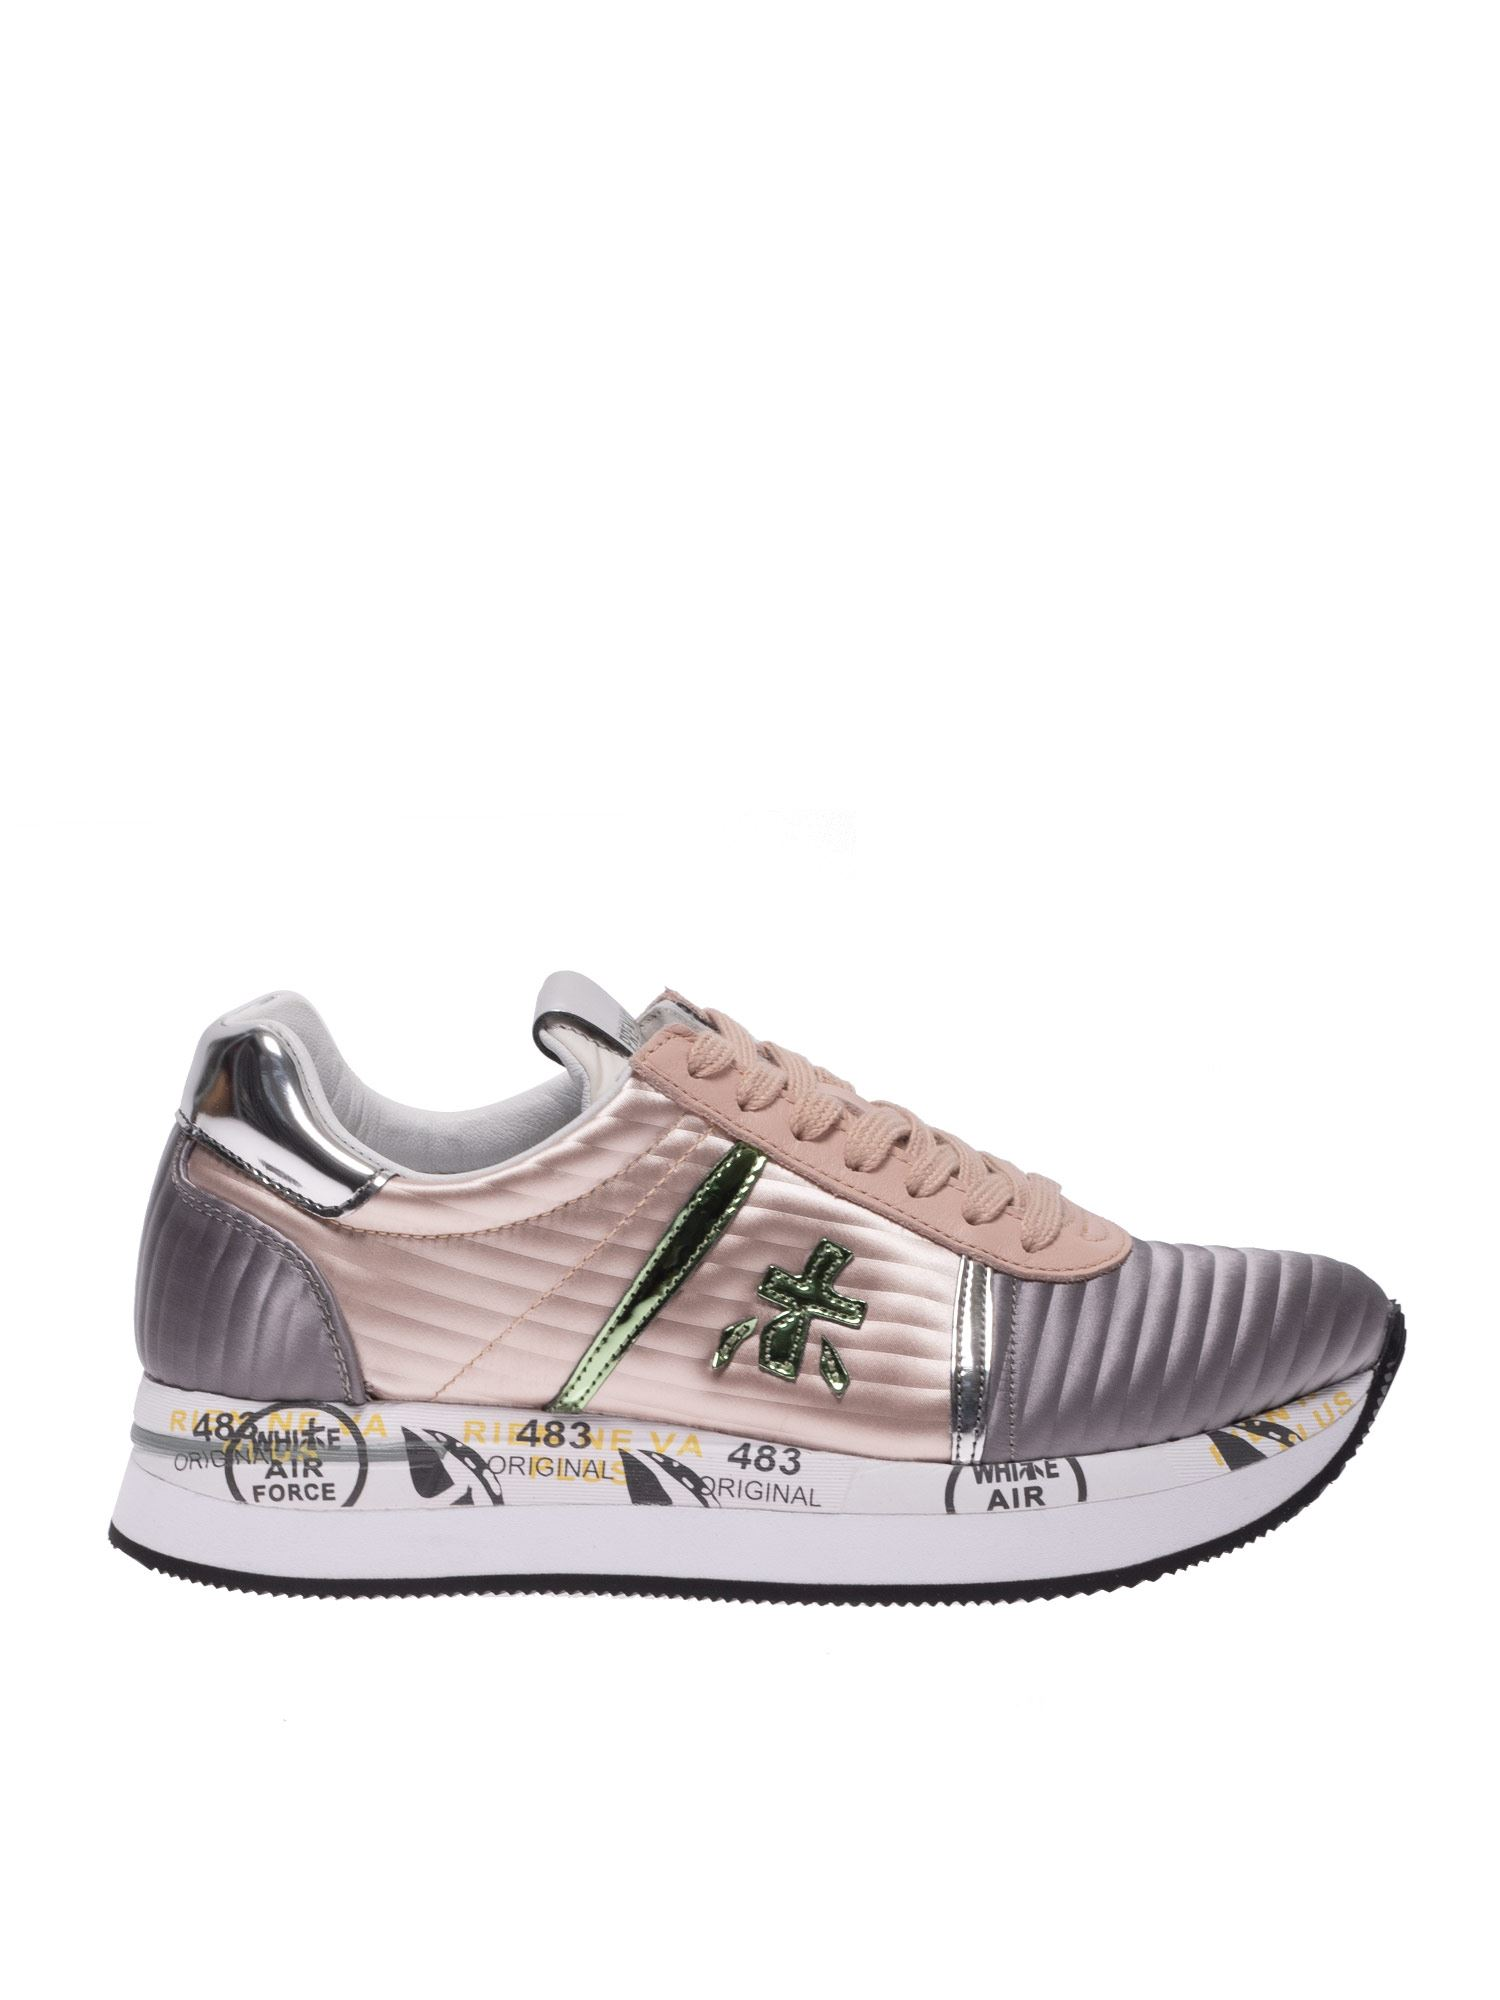 Premiata CONNY QUILTED SNEAKERS IN GRAY AND PINK